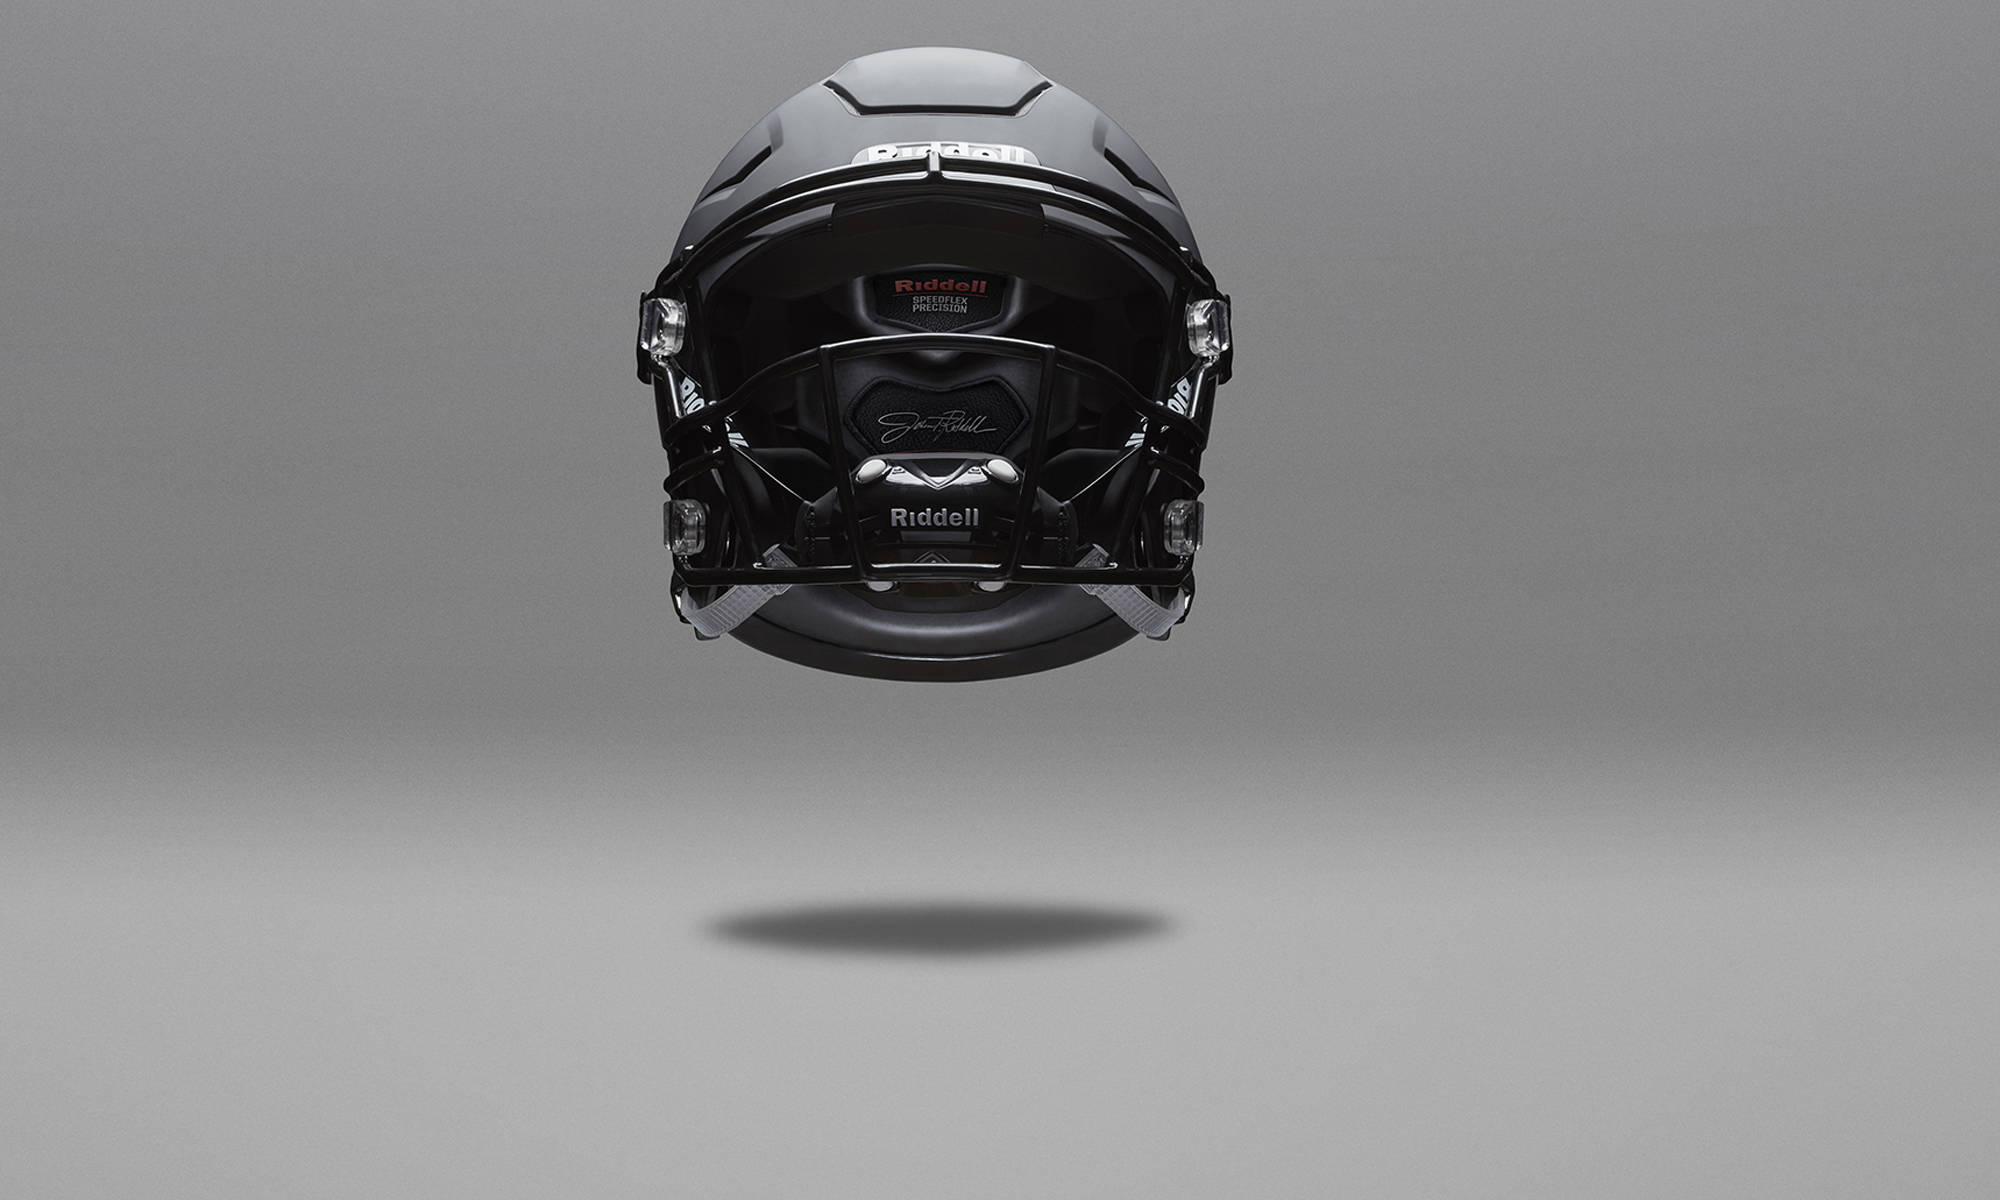 Delaware Football Partners with Riddell to Utilize New Precision-Fit Helmet  Technology ed5cc51c6